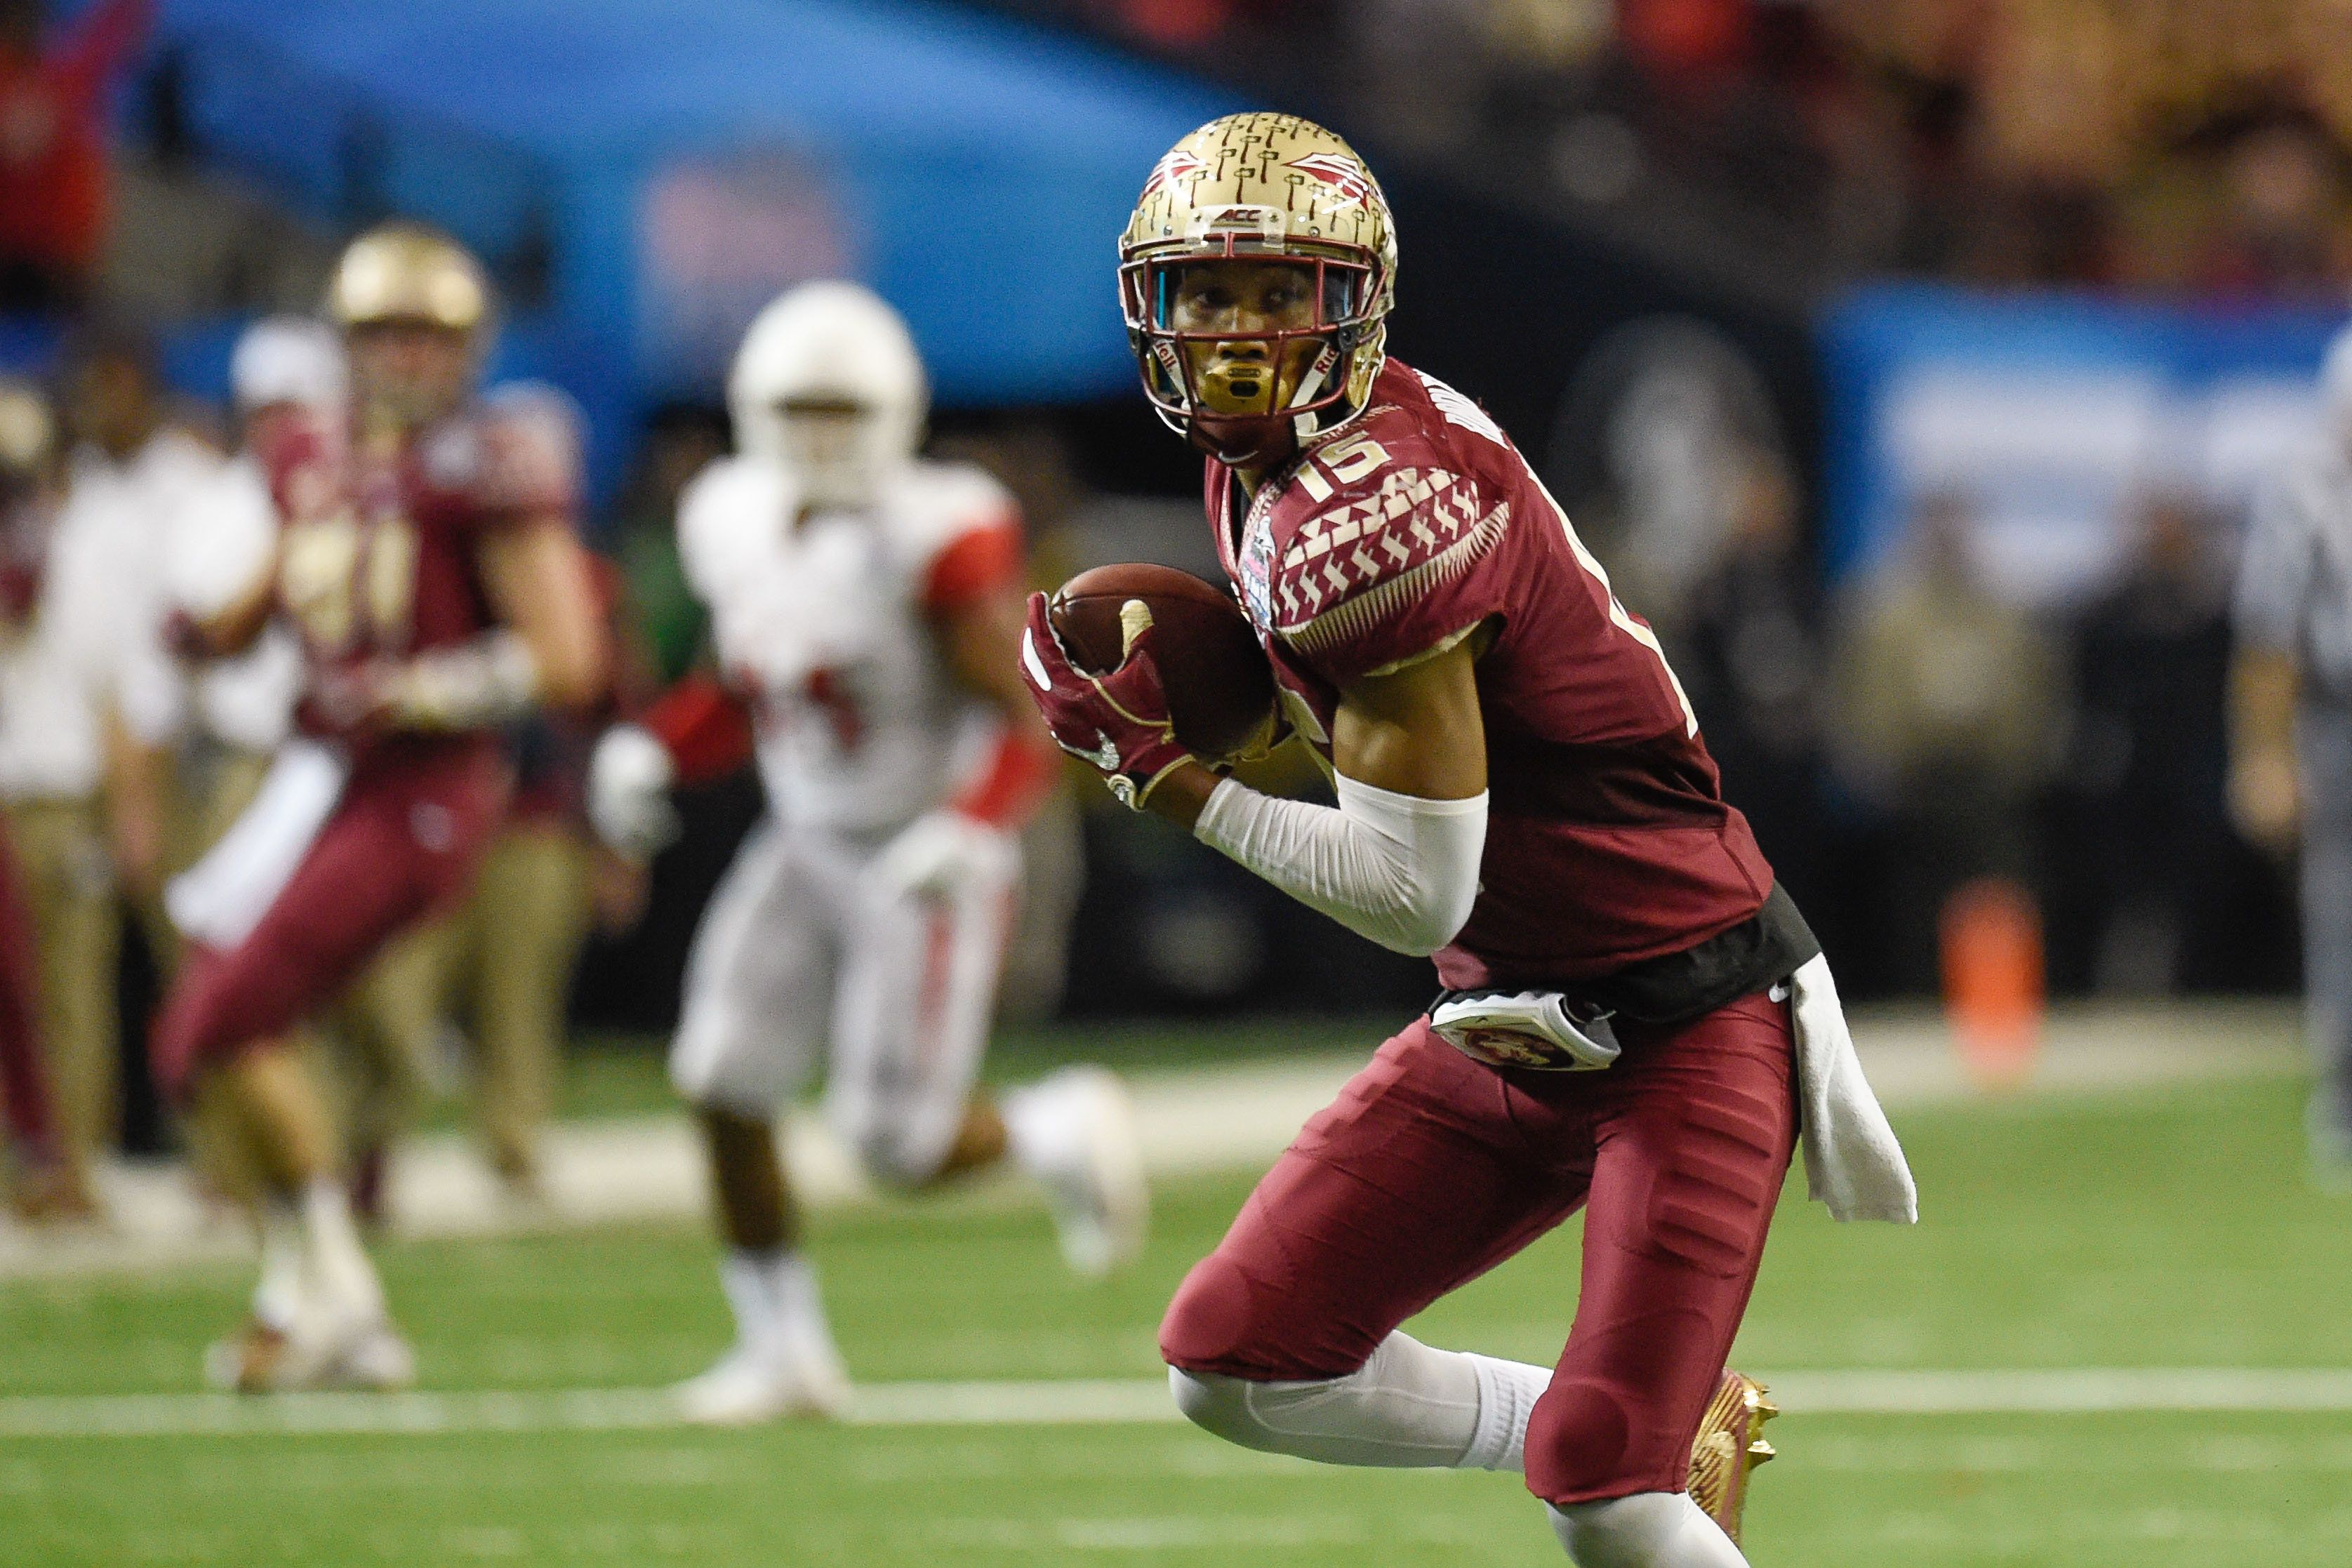 Florida State Seminoles wide receiver Travis Rudolph is being celebrated for his actions off the field...